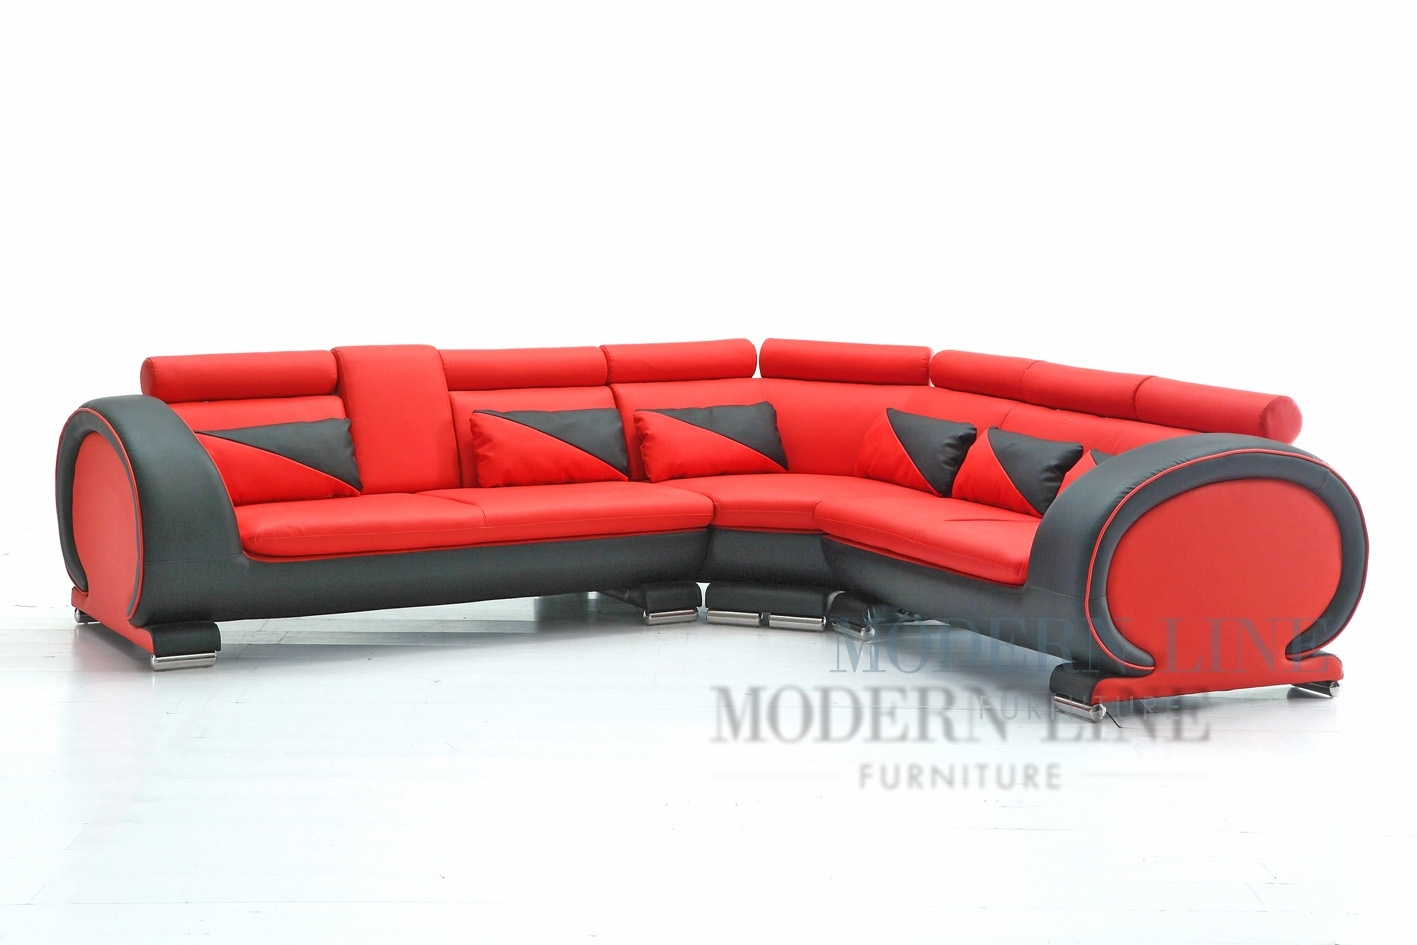 Emejing Red And Black Leather Sectional Gallery – Liltigertoo Intended For Red Black Sectional Sofas (View 8 of 10)